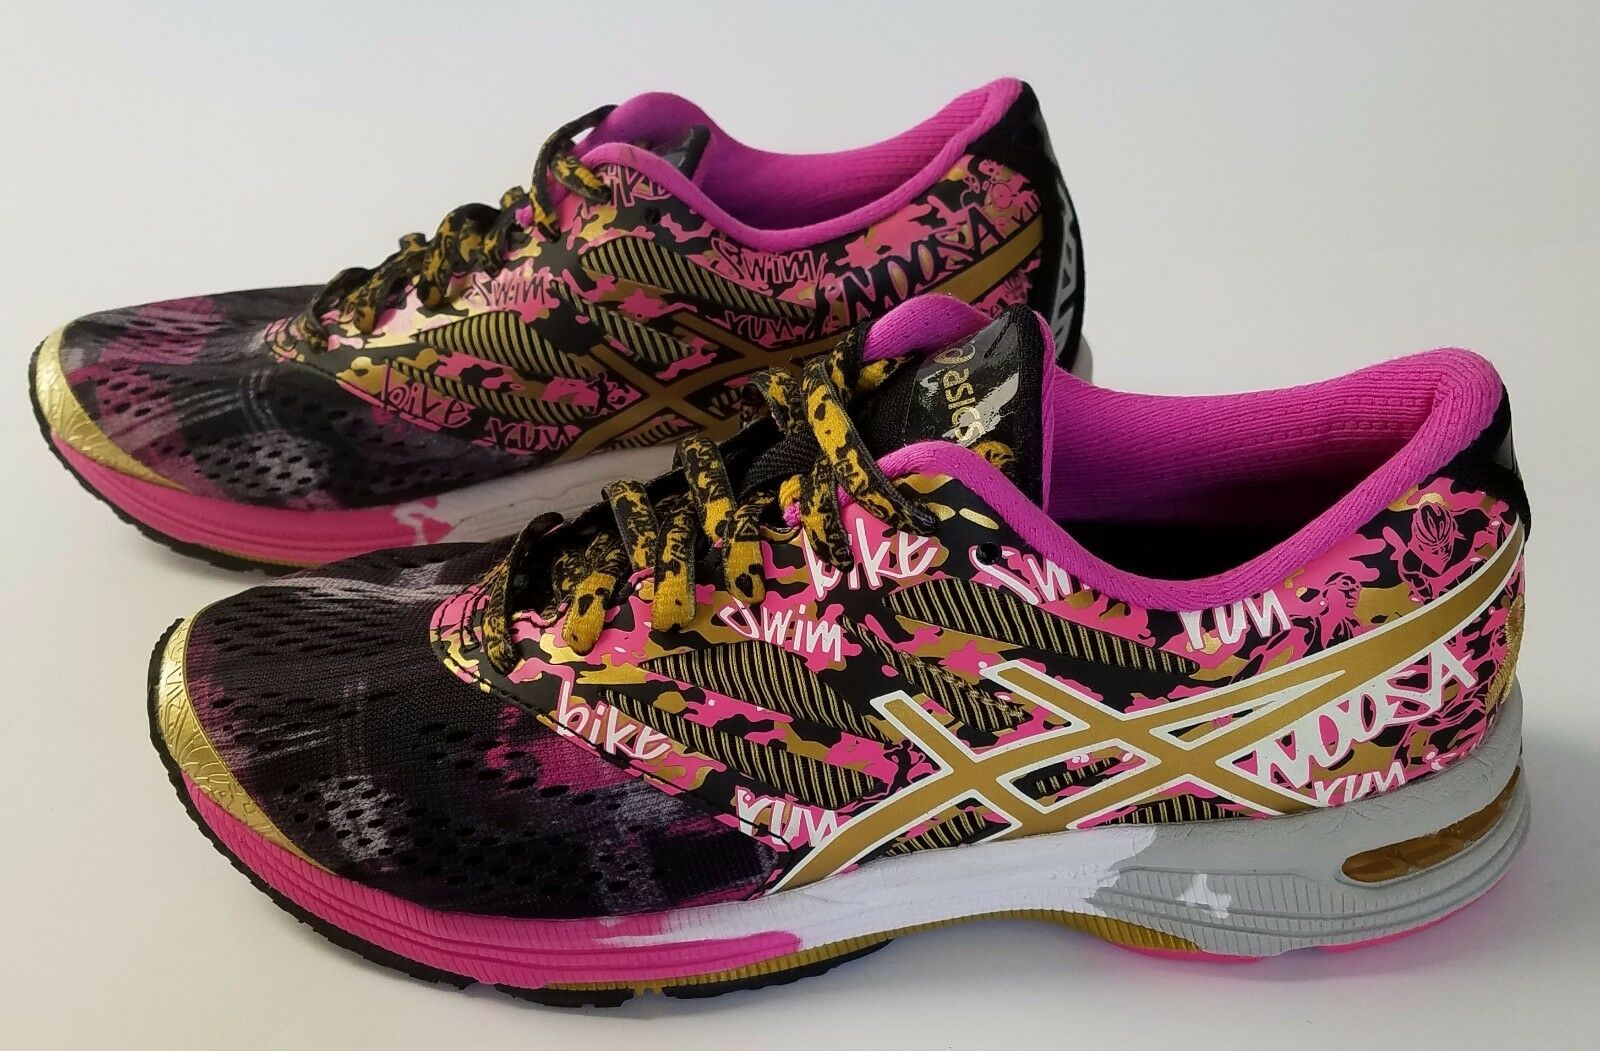 ASICS Women's GEL-Noosa Tri 10 Gold Ribbon Running Shoes Comfortable Comfortable and good-looking